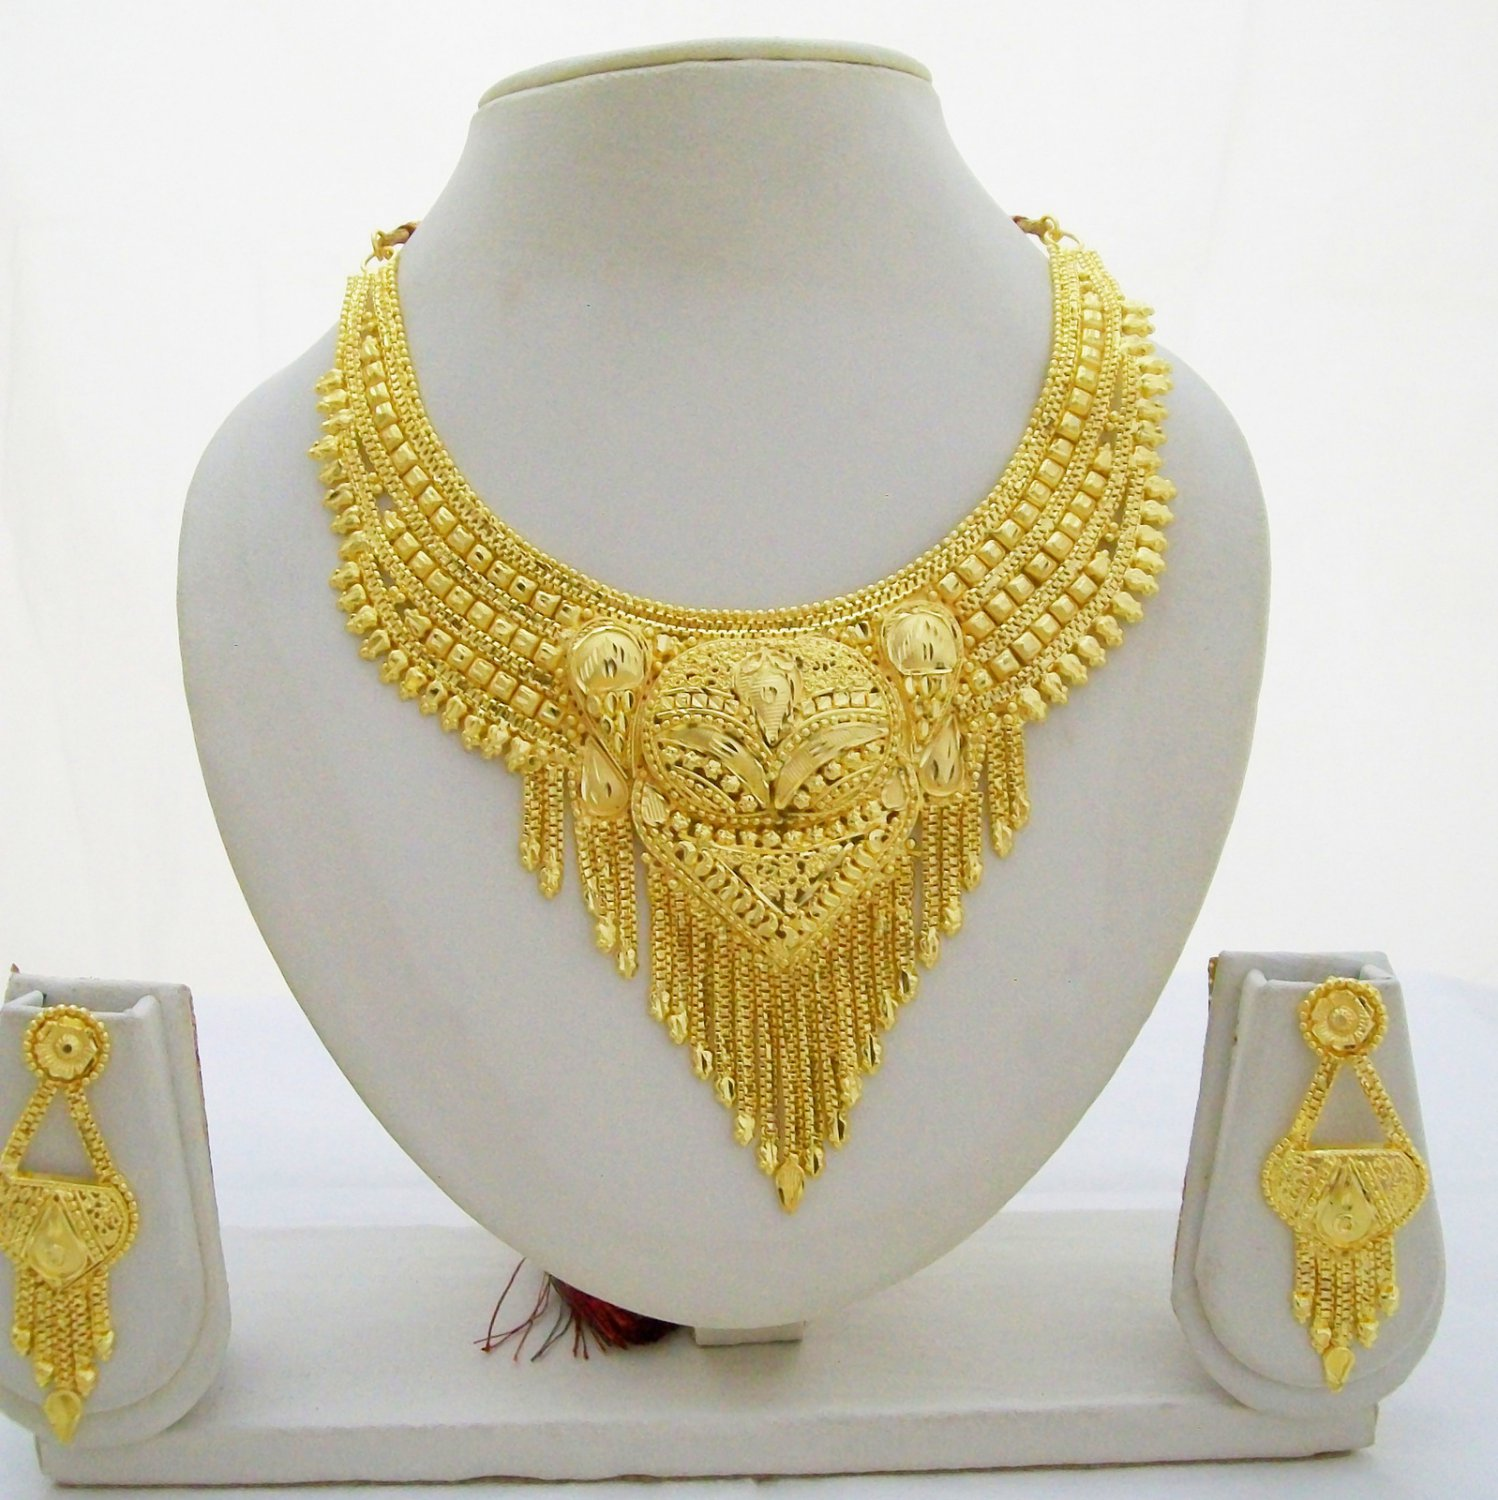 fashion find tribal prices compare regional necklace plated jewellery asian from bollywood gold collections watches earrings east and wedding offers indian ethnic online jewel jewelry set